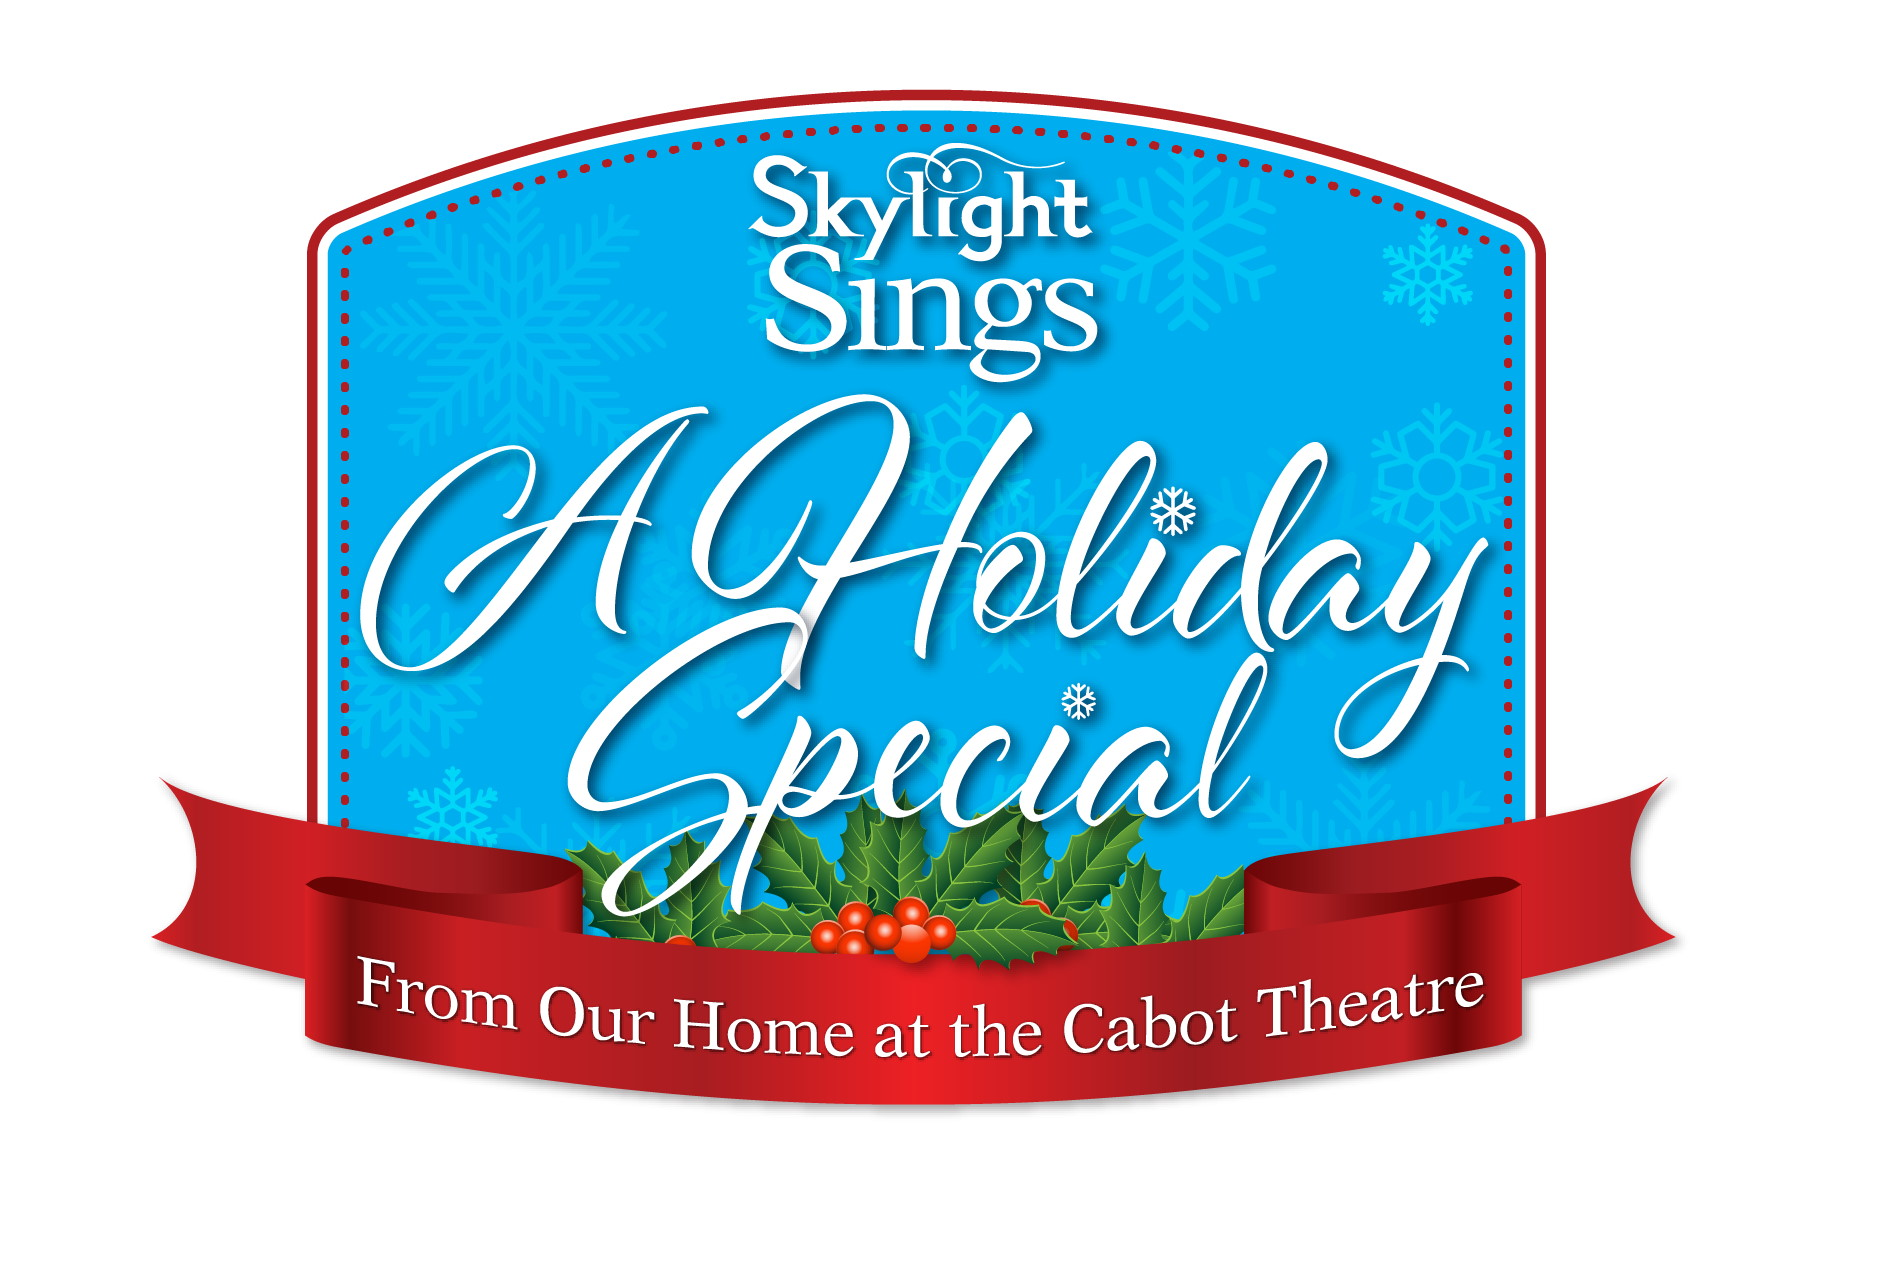 Skylight Sings: A Holiday Special From Our Home at the Cabot Theatre